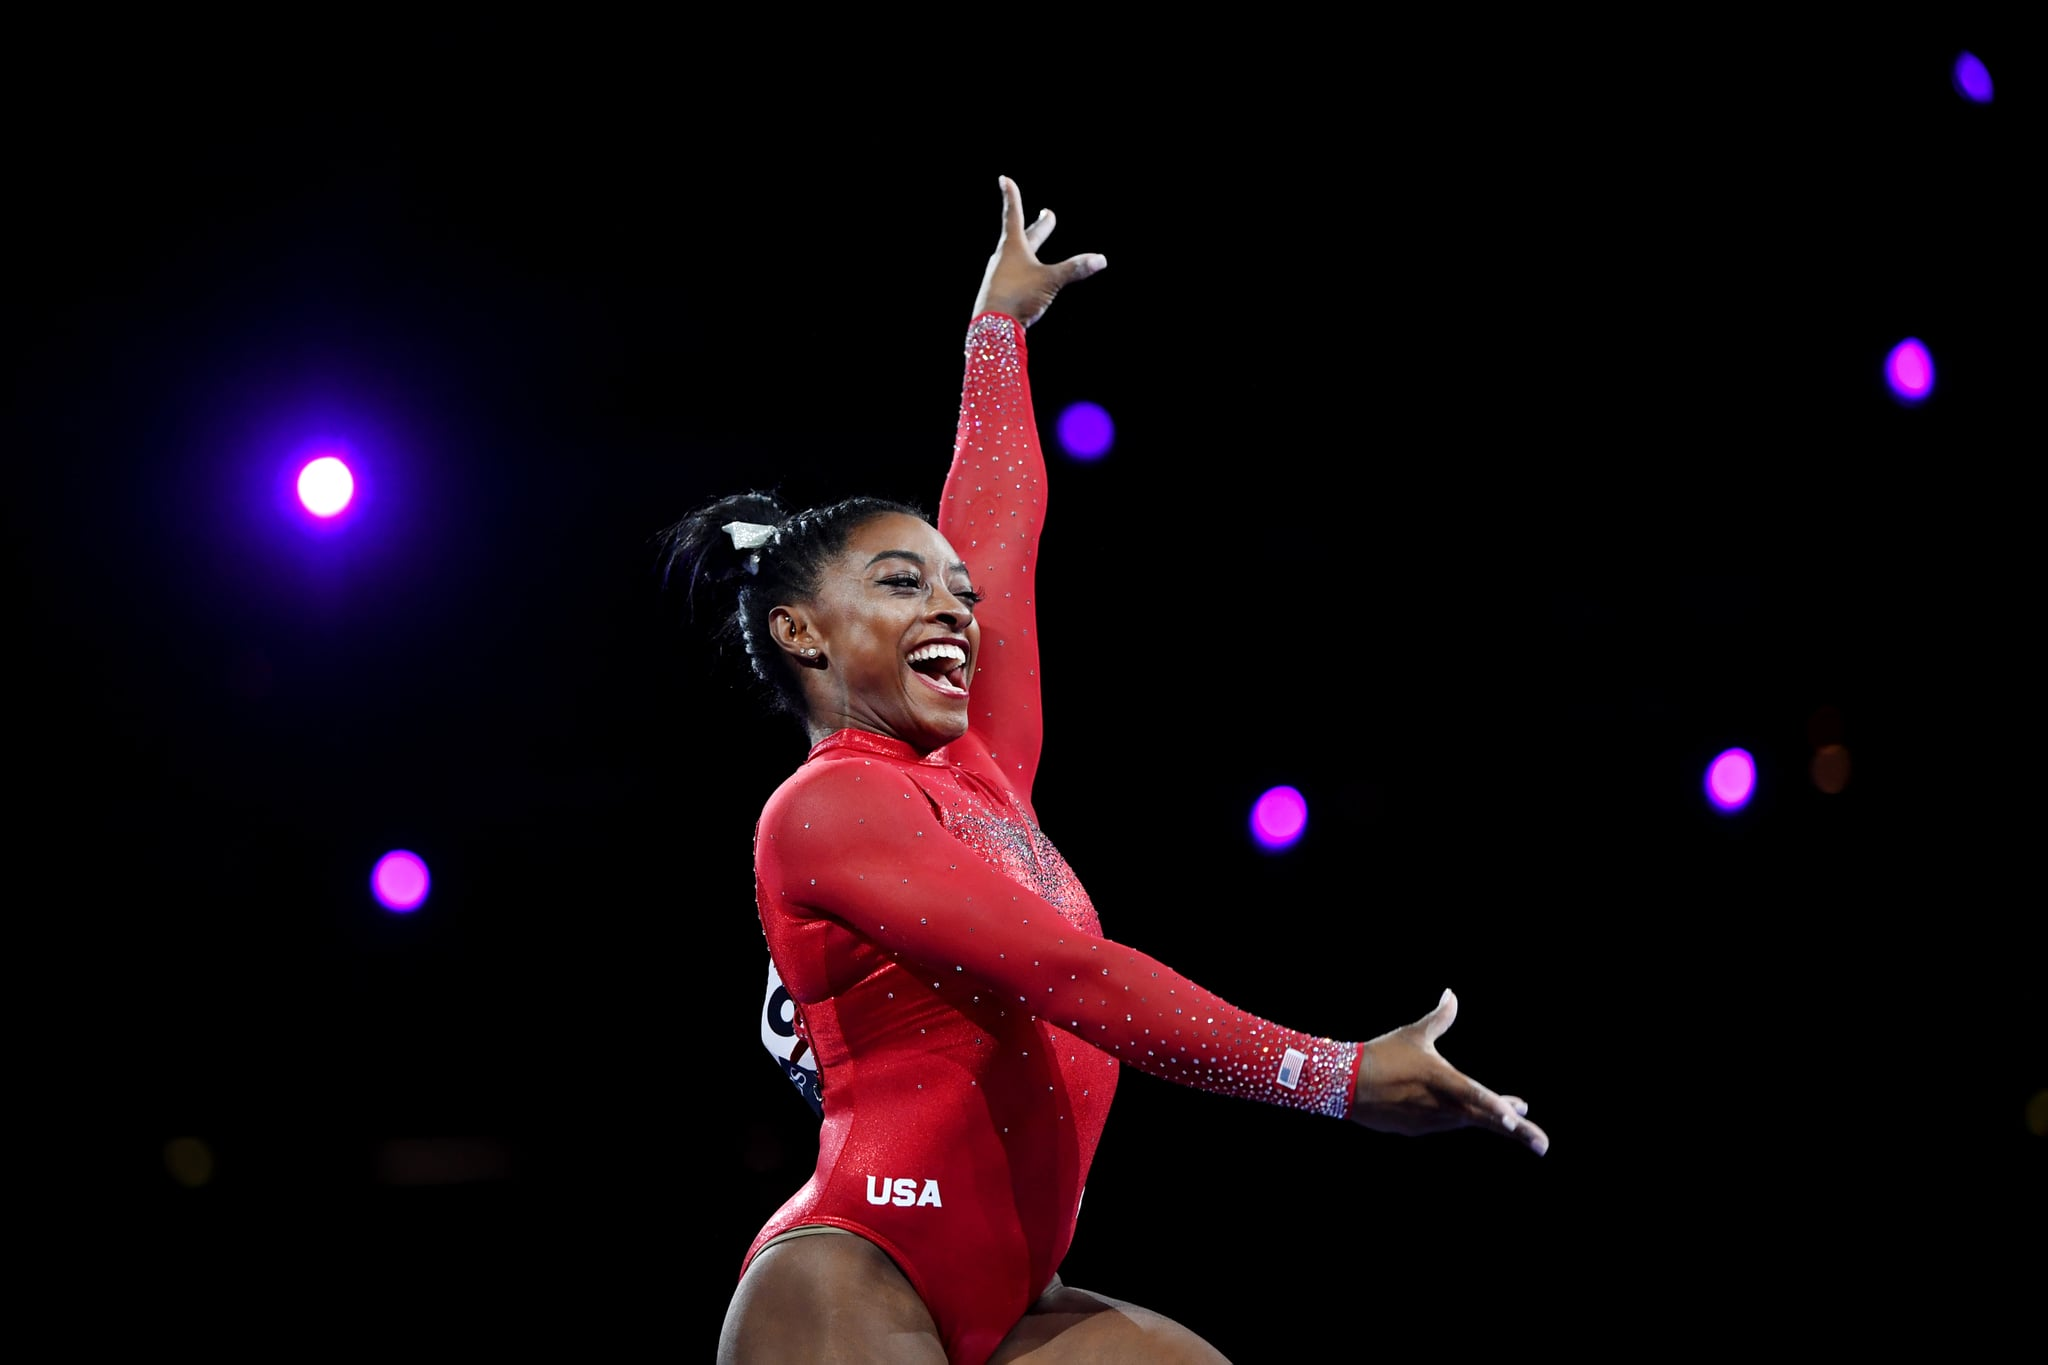 STUTTGART, GERMANY - OCTOBER 12: Simone Biles of United States reacts after her routine in Women's Vault Final in the Apparatus Finals during Day 9 of 49th FIG Artistic Gymnastics World Championships at Hanns-Martin-Schleyer-Halle on October 12, 2019 in Stuttgart, Germany. (Photo by Laurence Griffiths/Getty Images)